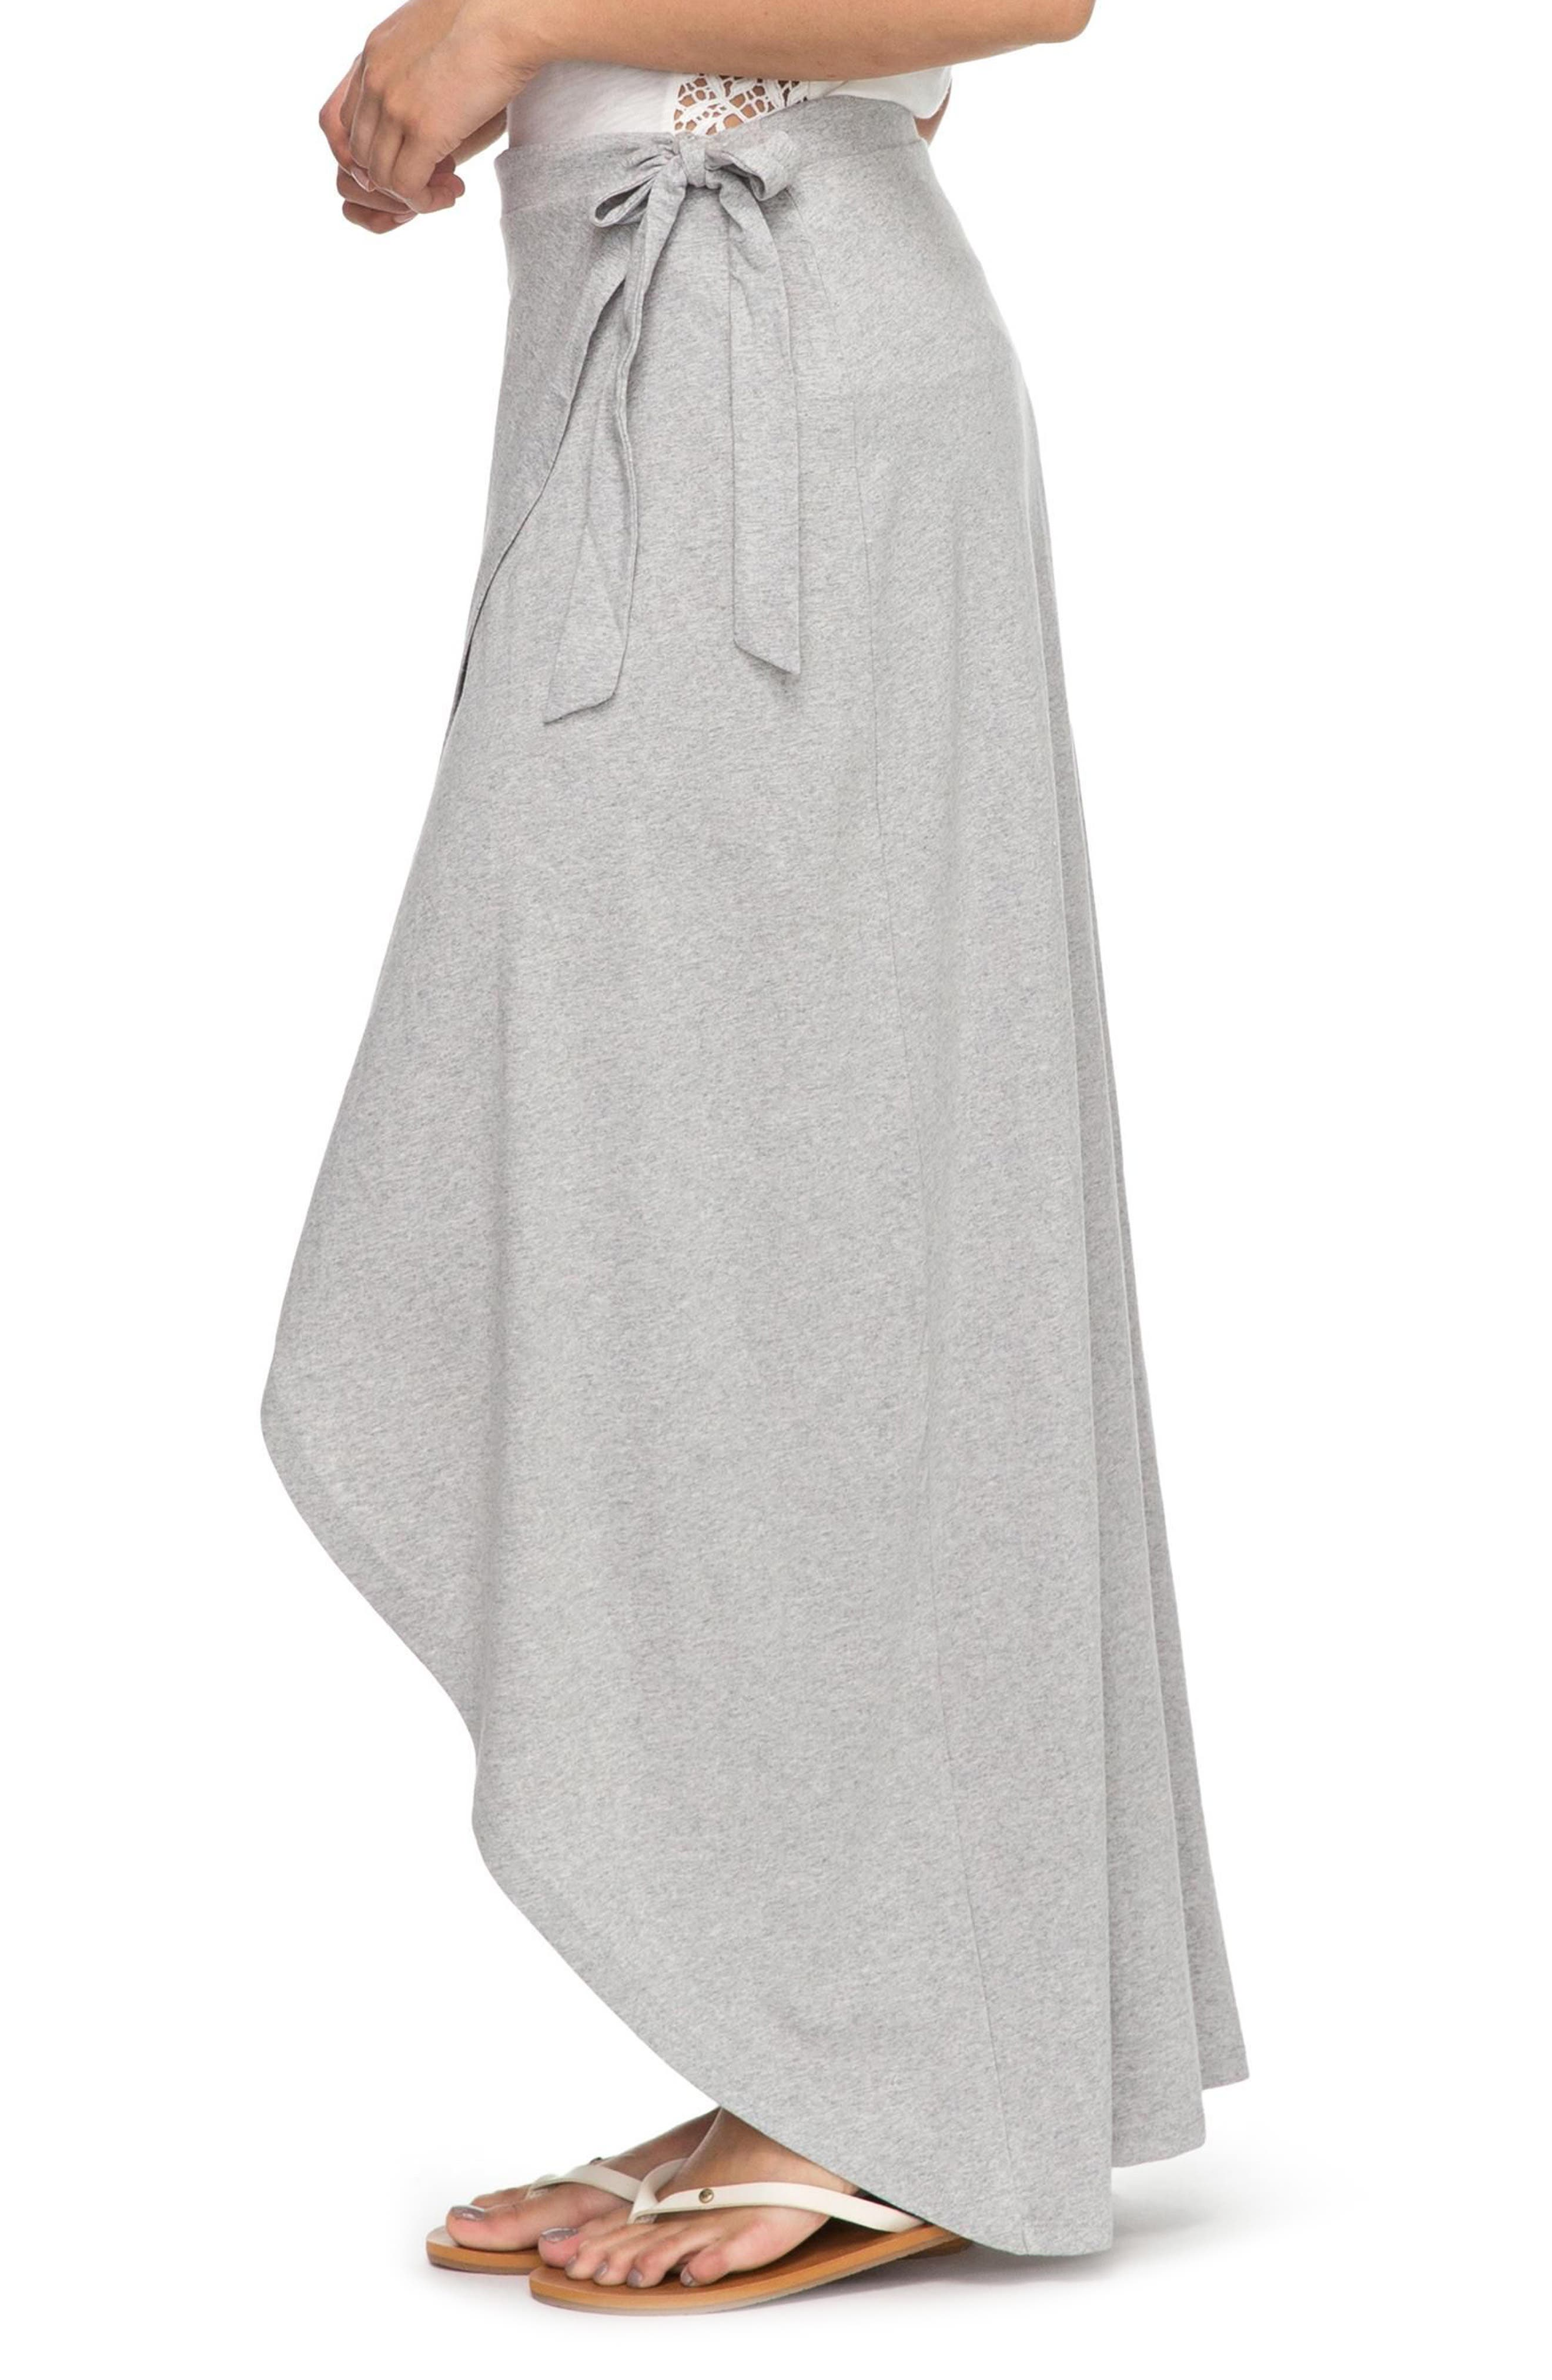 Everlasting Afternoon Long Wrap Skirt,                             Alternate thumbnail 4, color,                             Heritage Heather